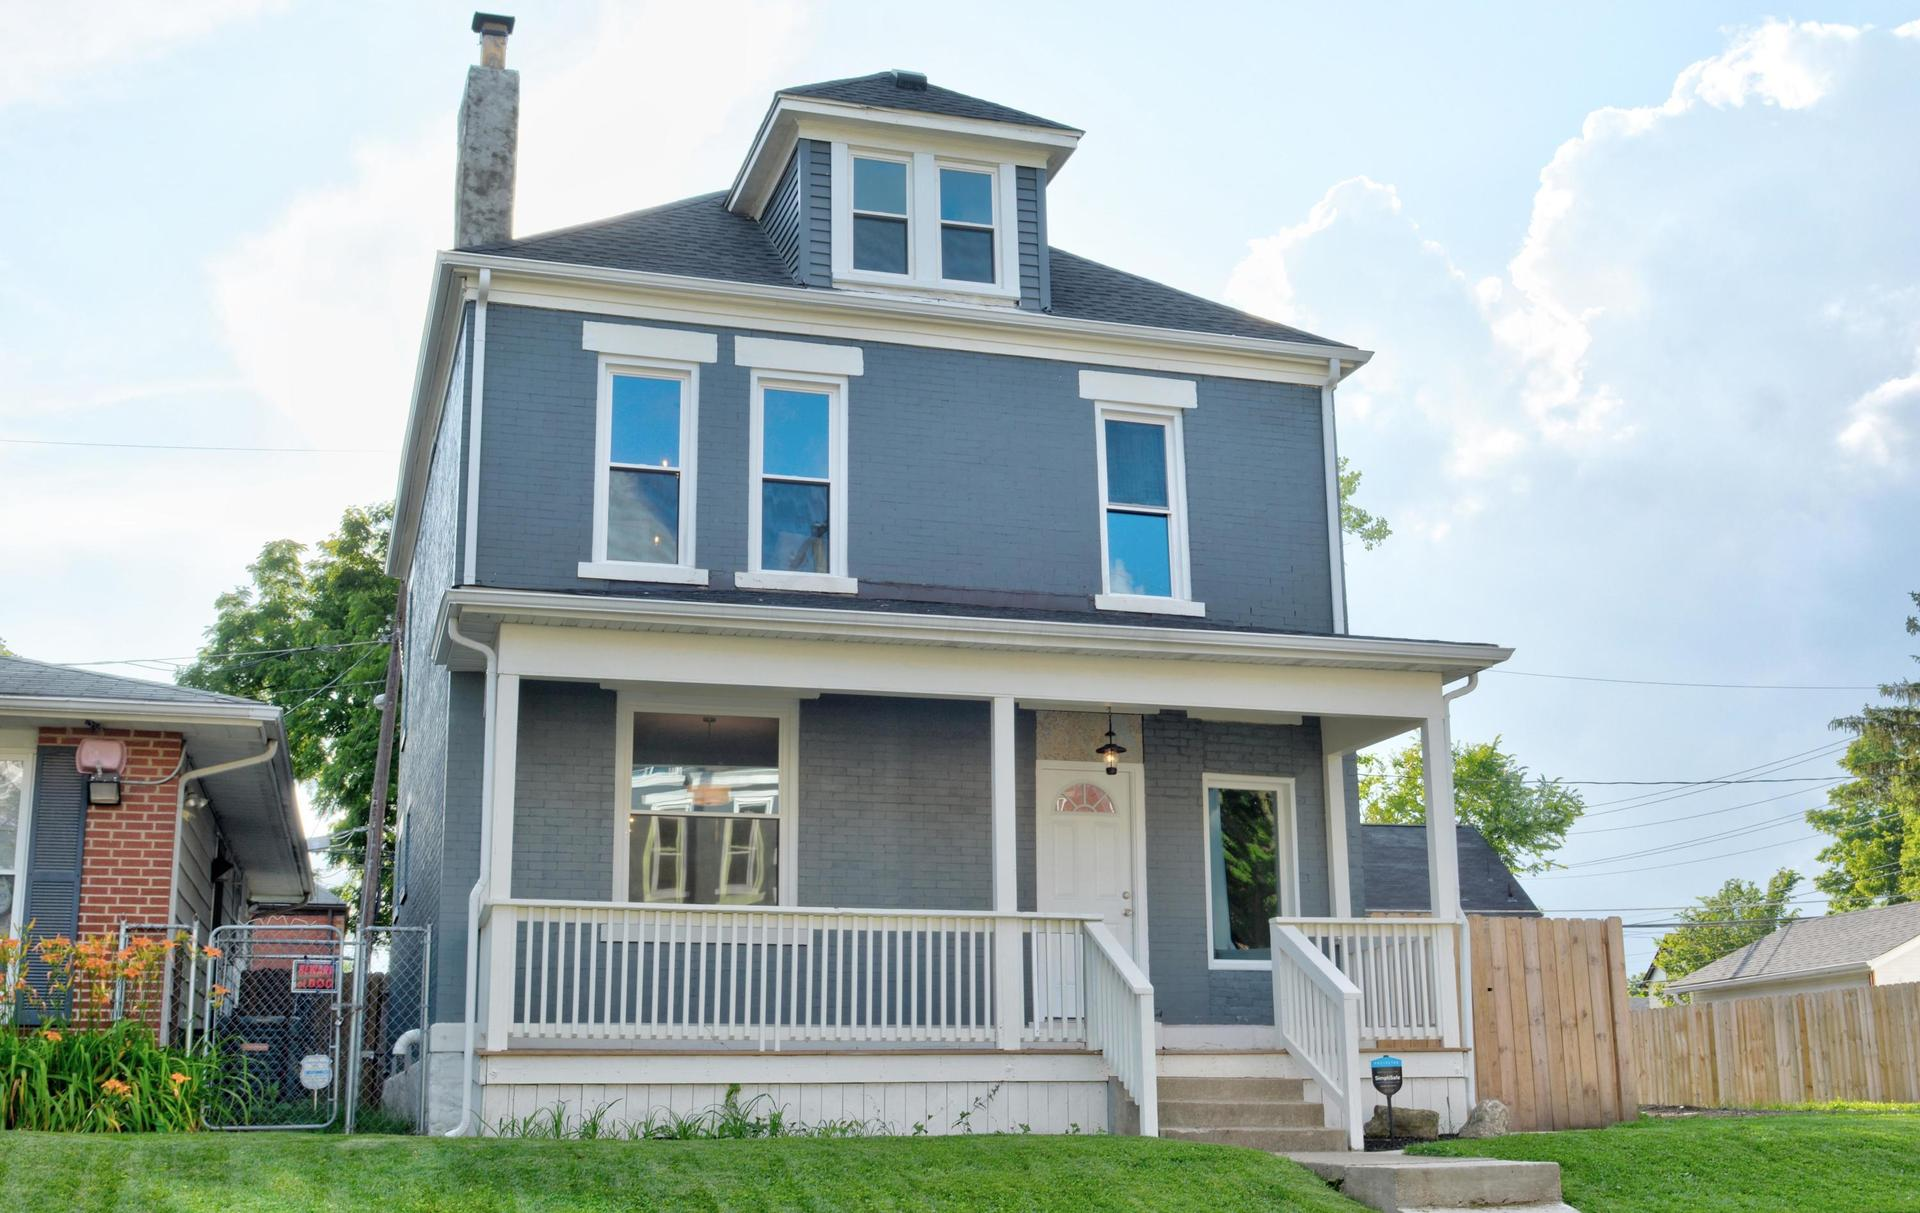 House flipping in Columbus continues throughout its downtown and surrounding areas as new investment opportunities emerge.